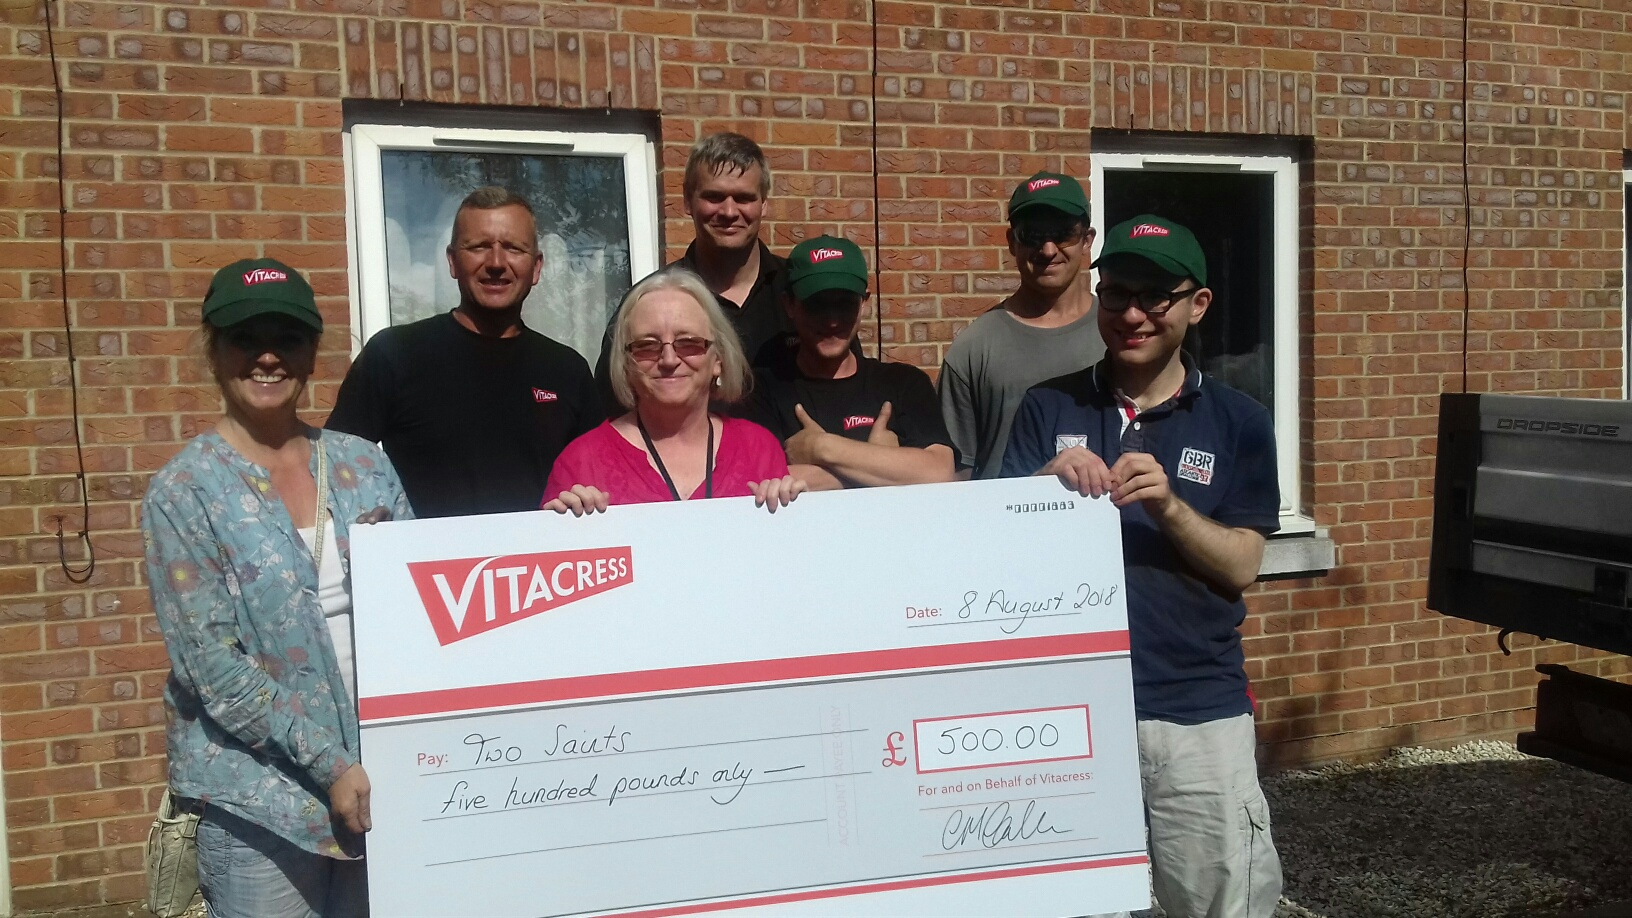 Vitacress Salads raises more than £1700 for local Andover homeless charity